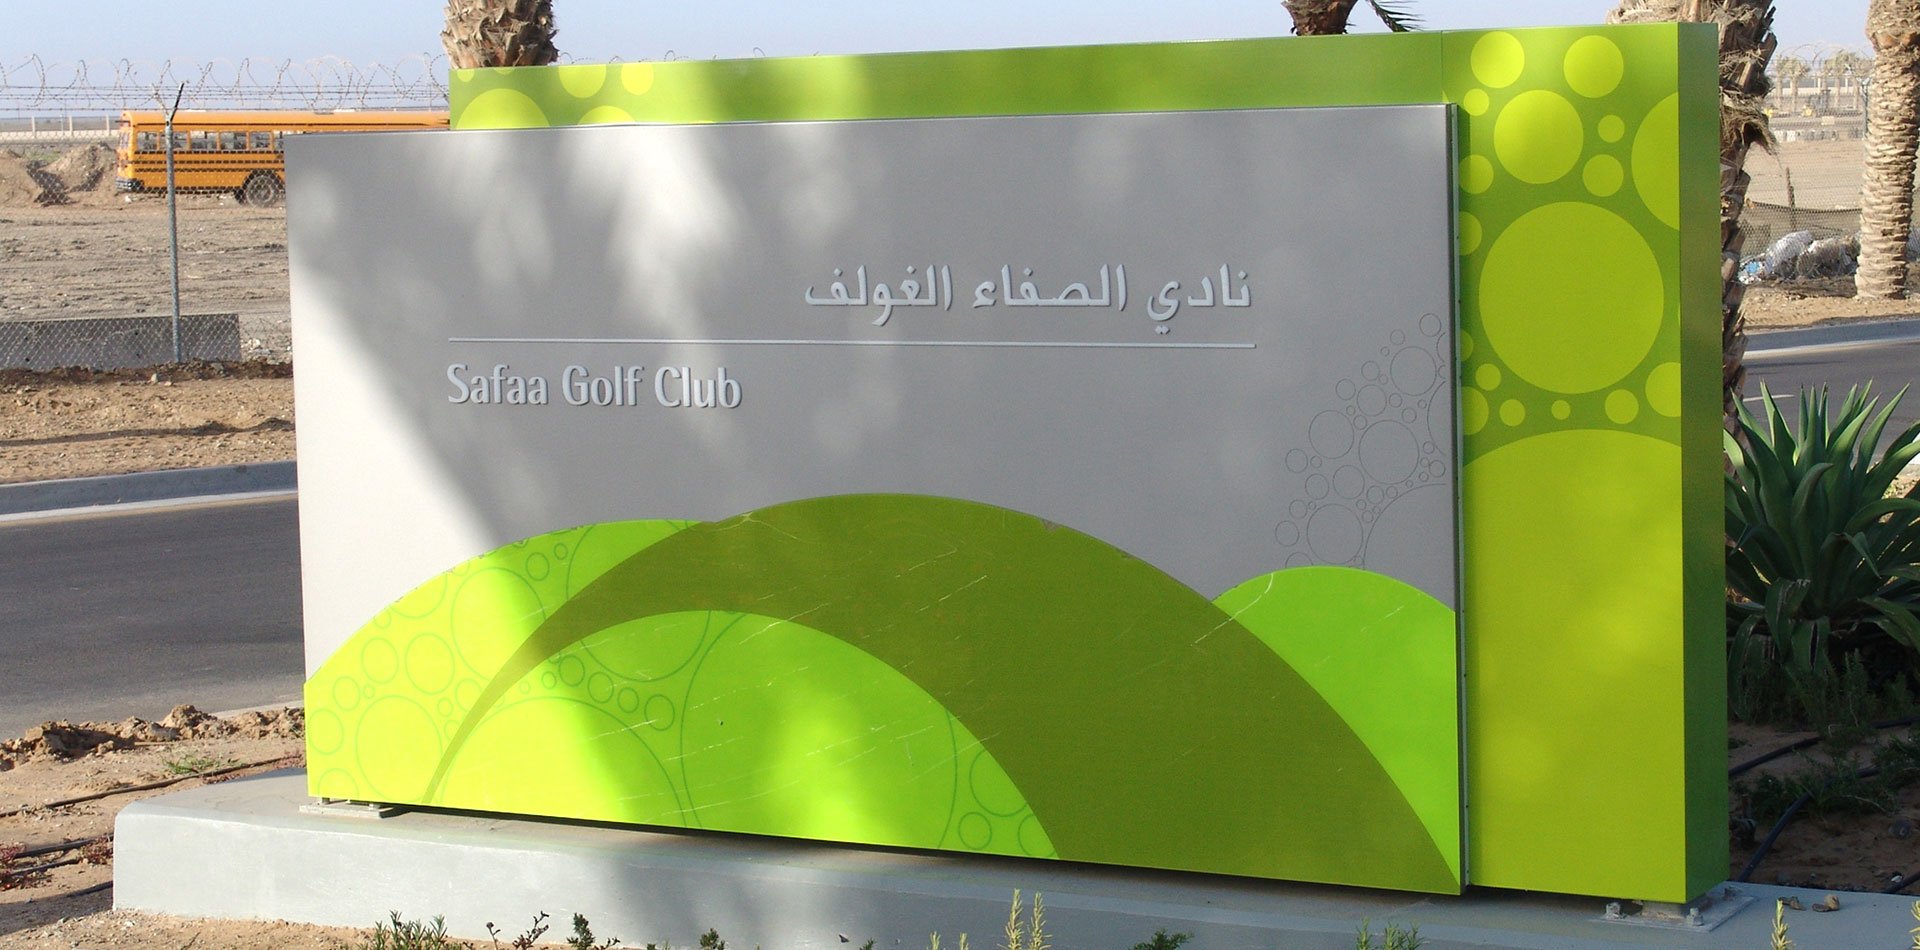 Monument Signage of Safaa Golf Club